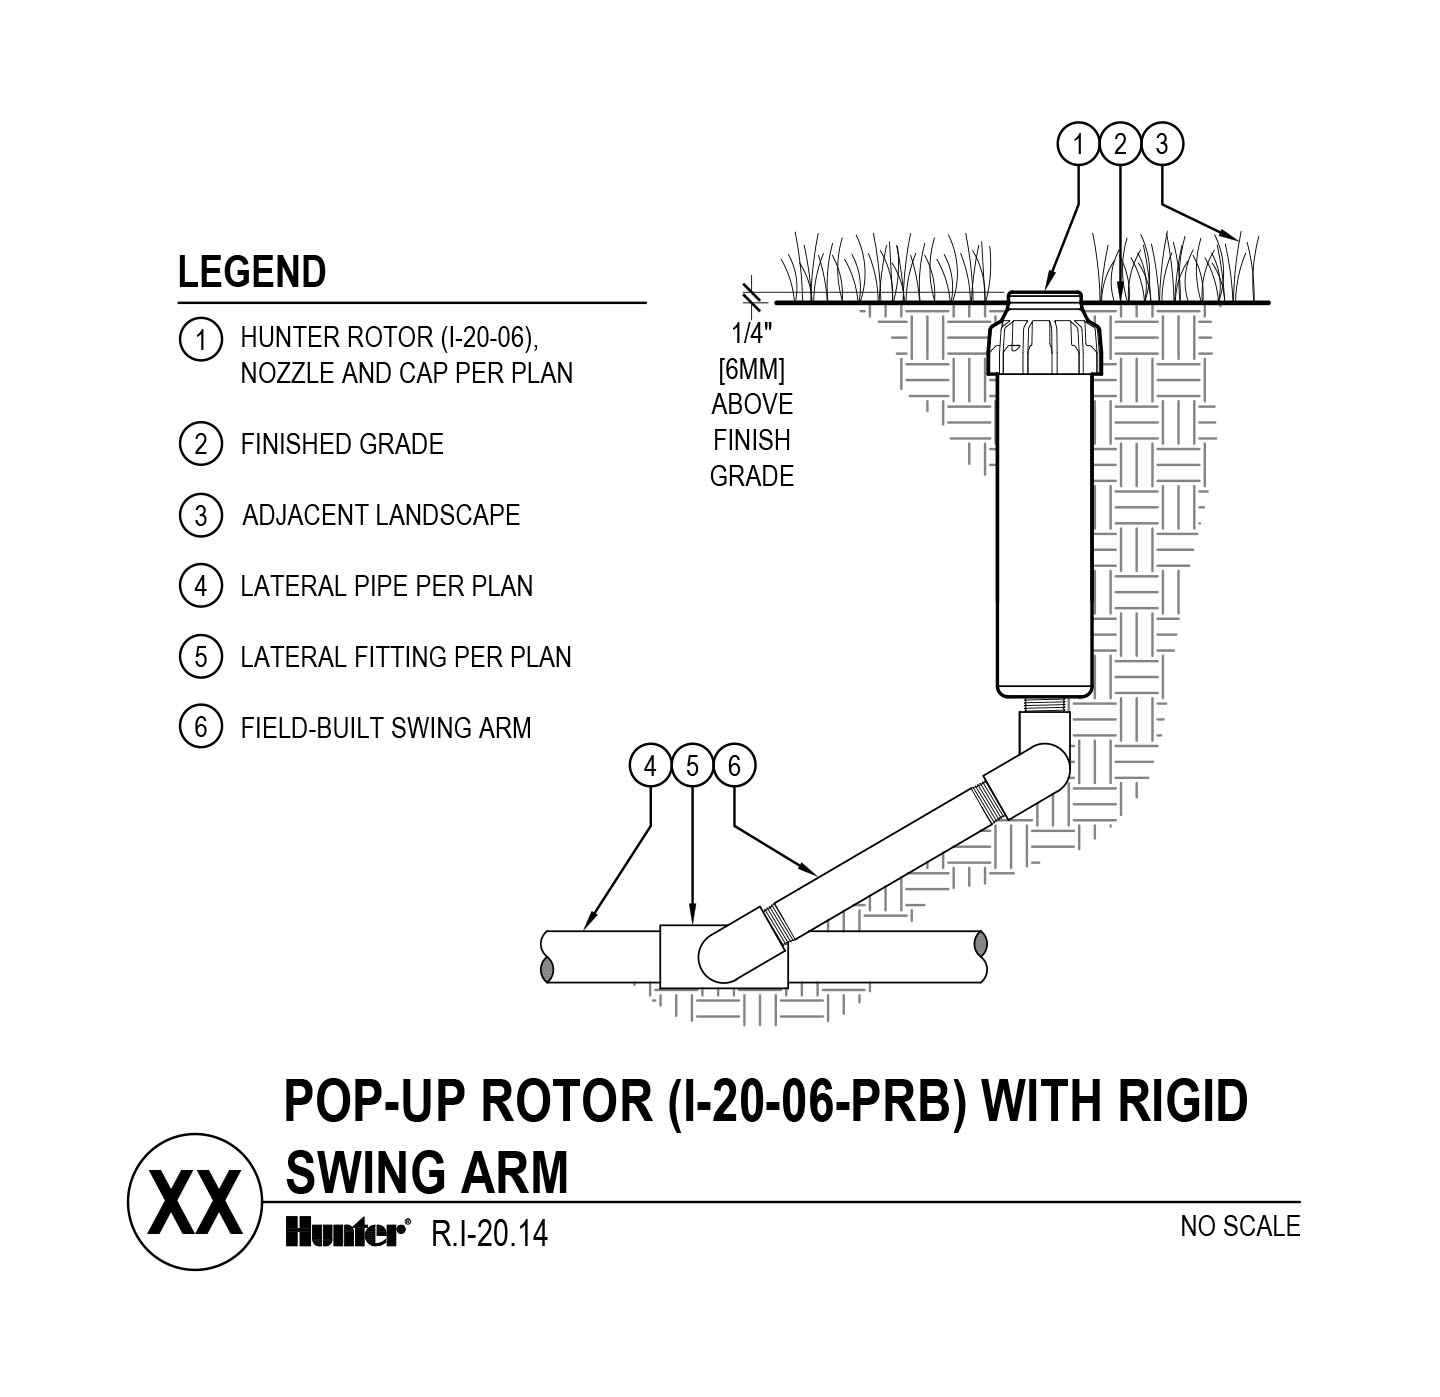 CAD - I-20-06-PRB with swing arm